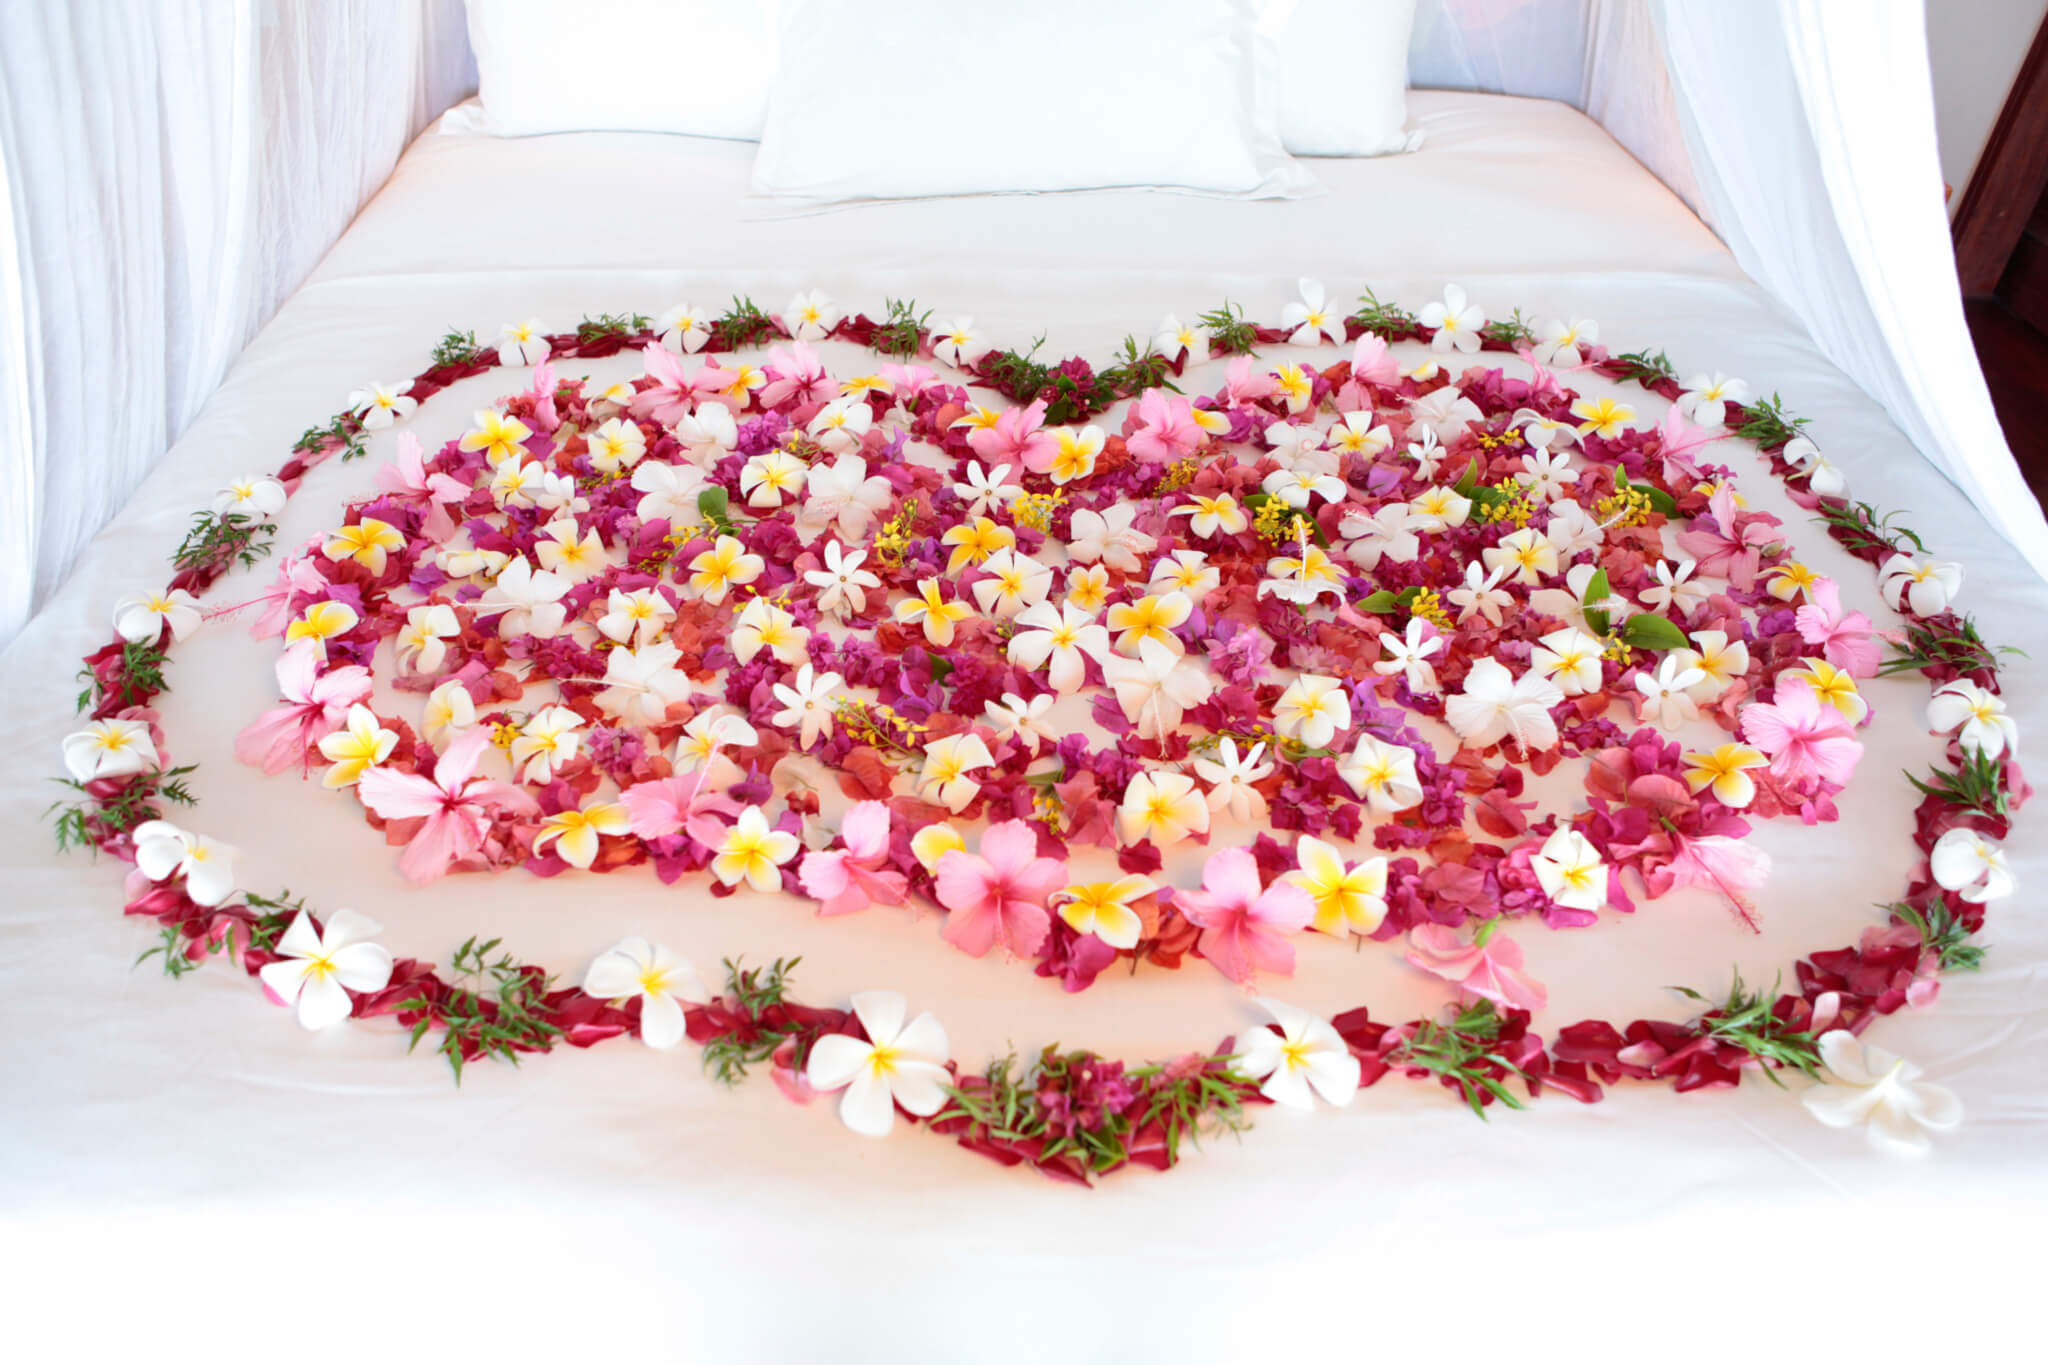 Bed full of flower in the Islands of Tahiti